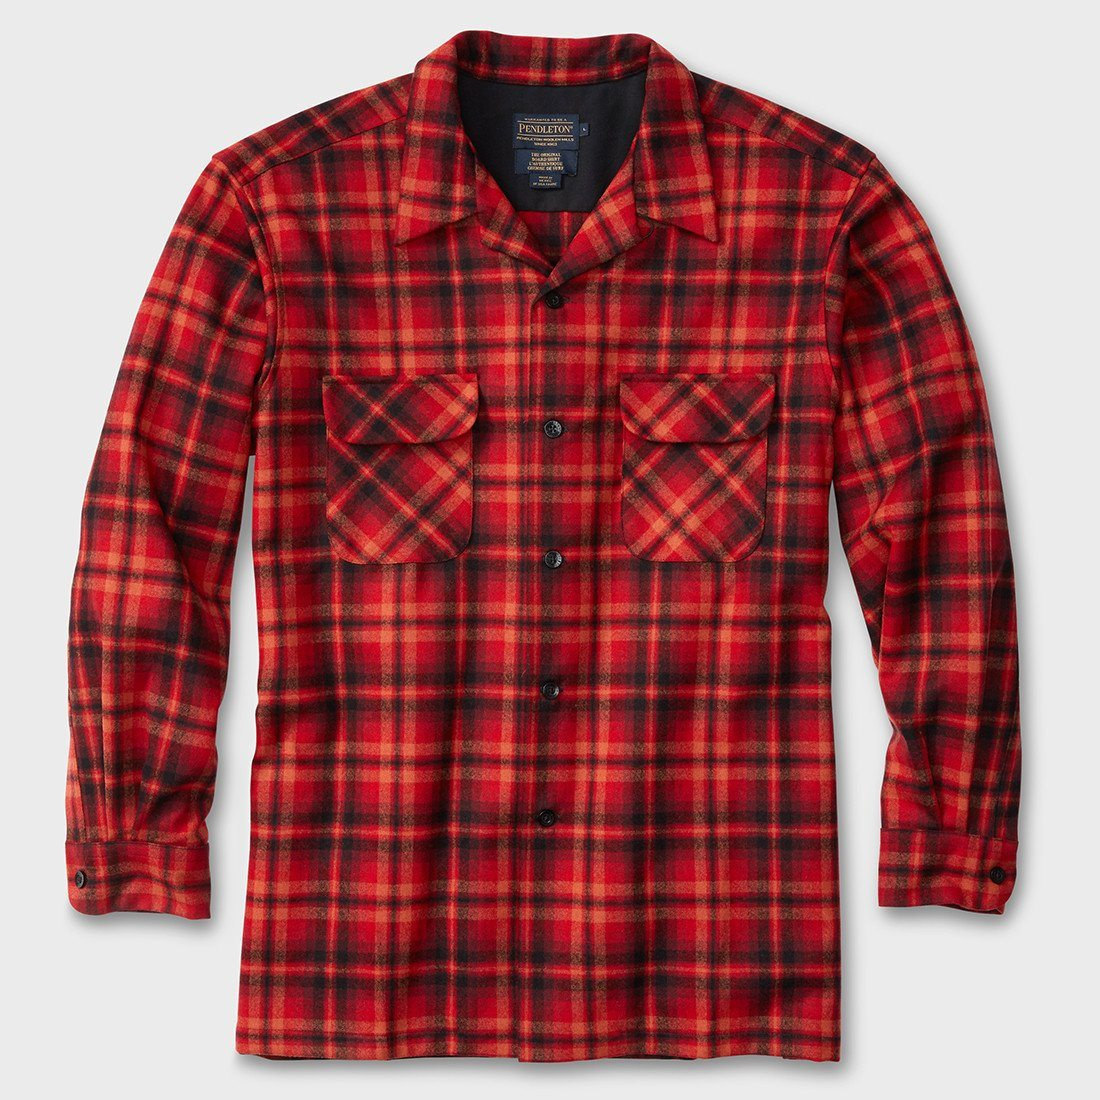 Pendleton Board Shirt Red/Copper